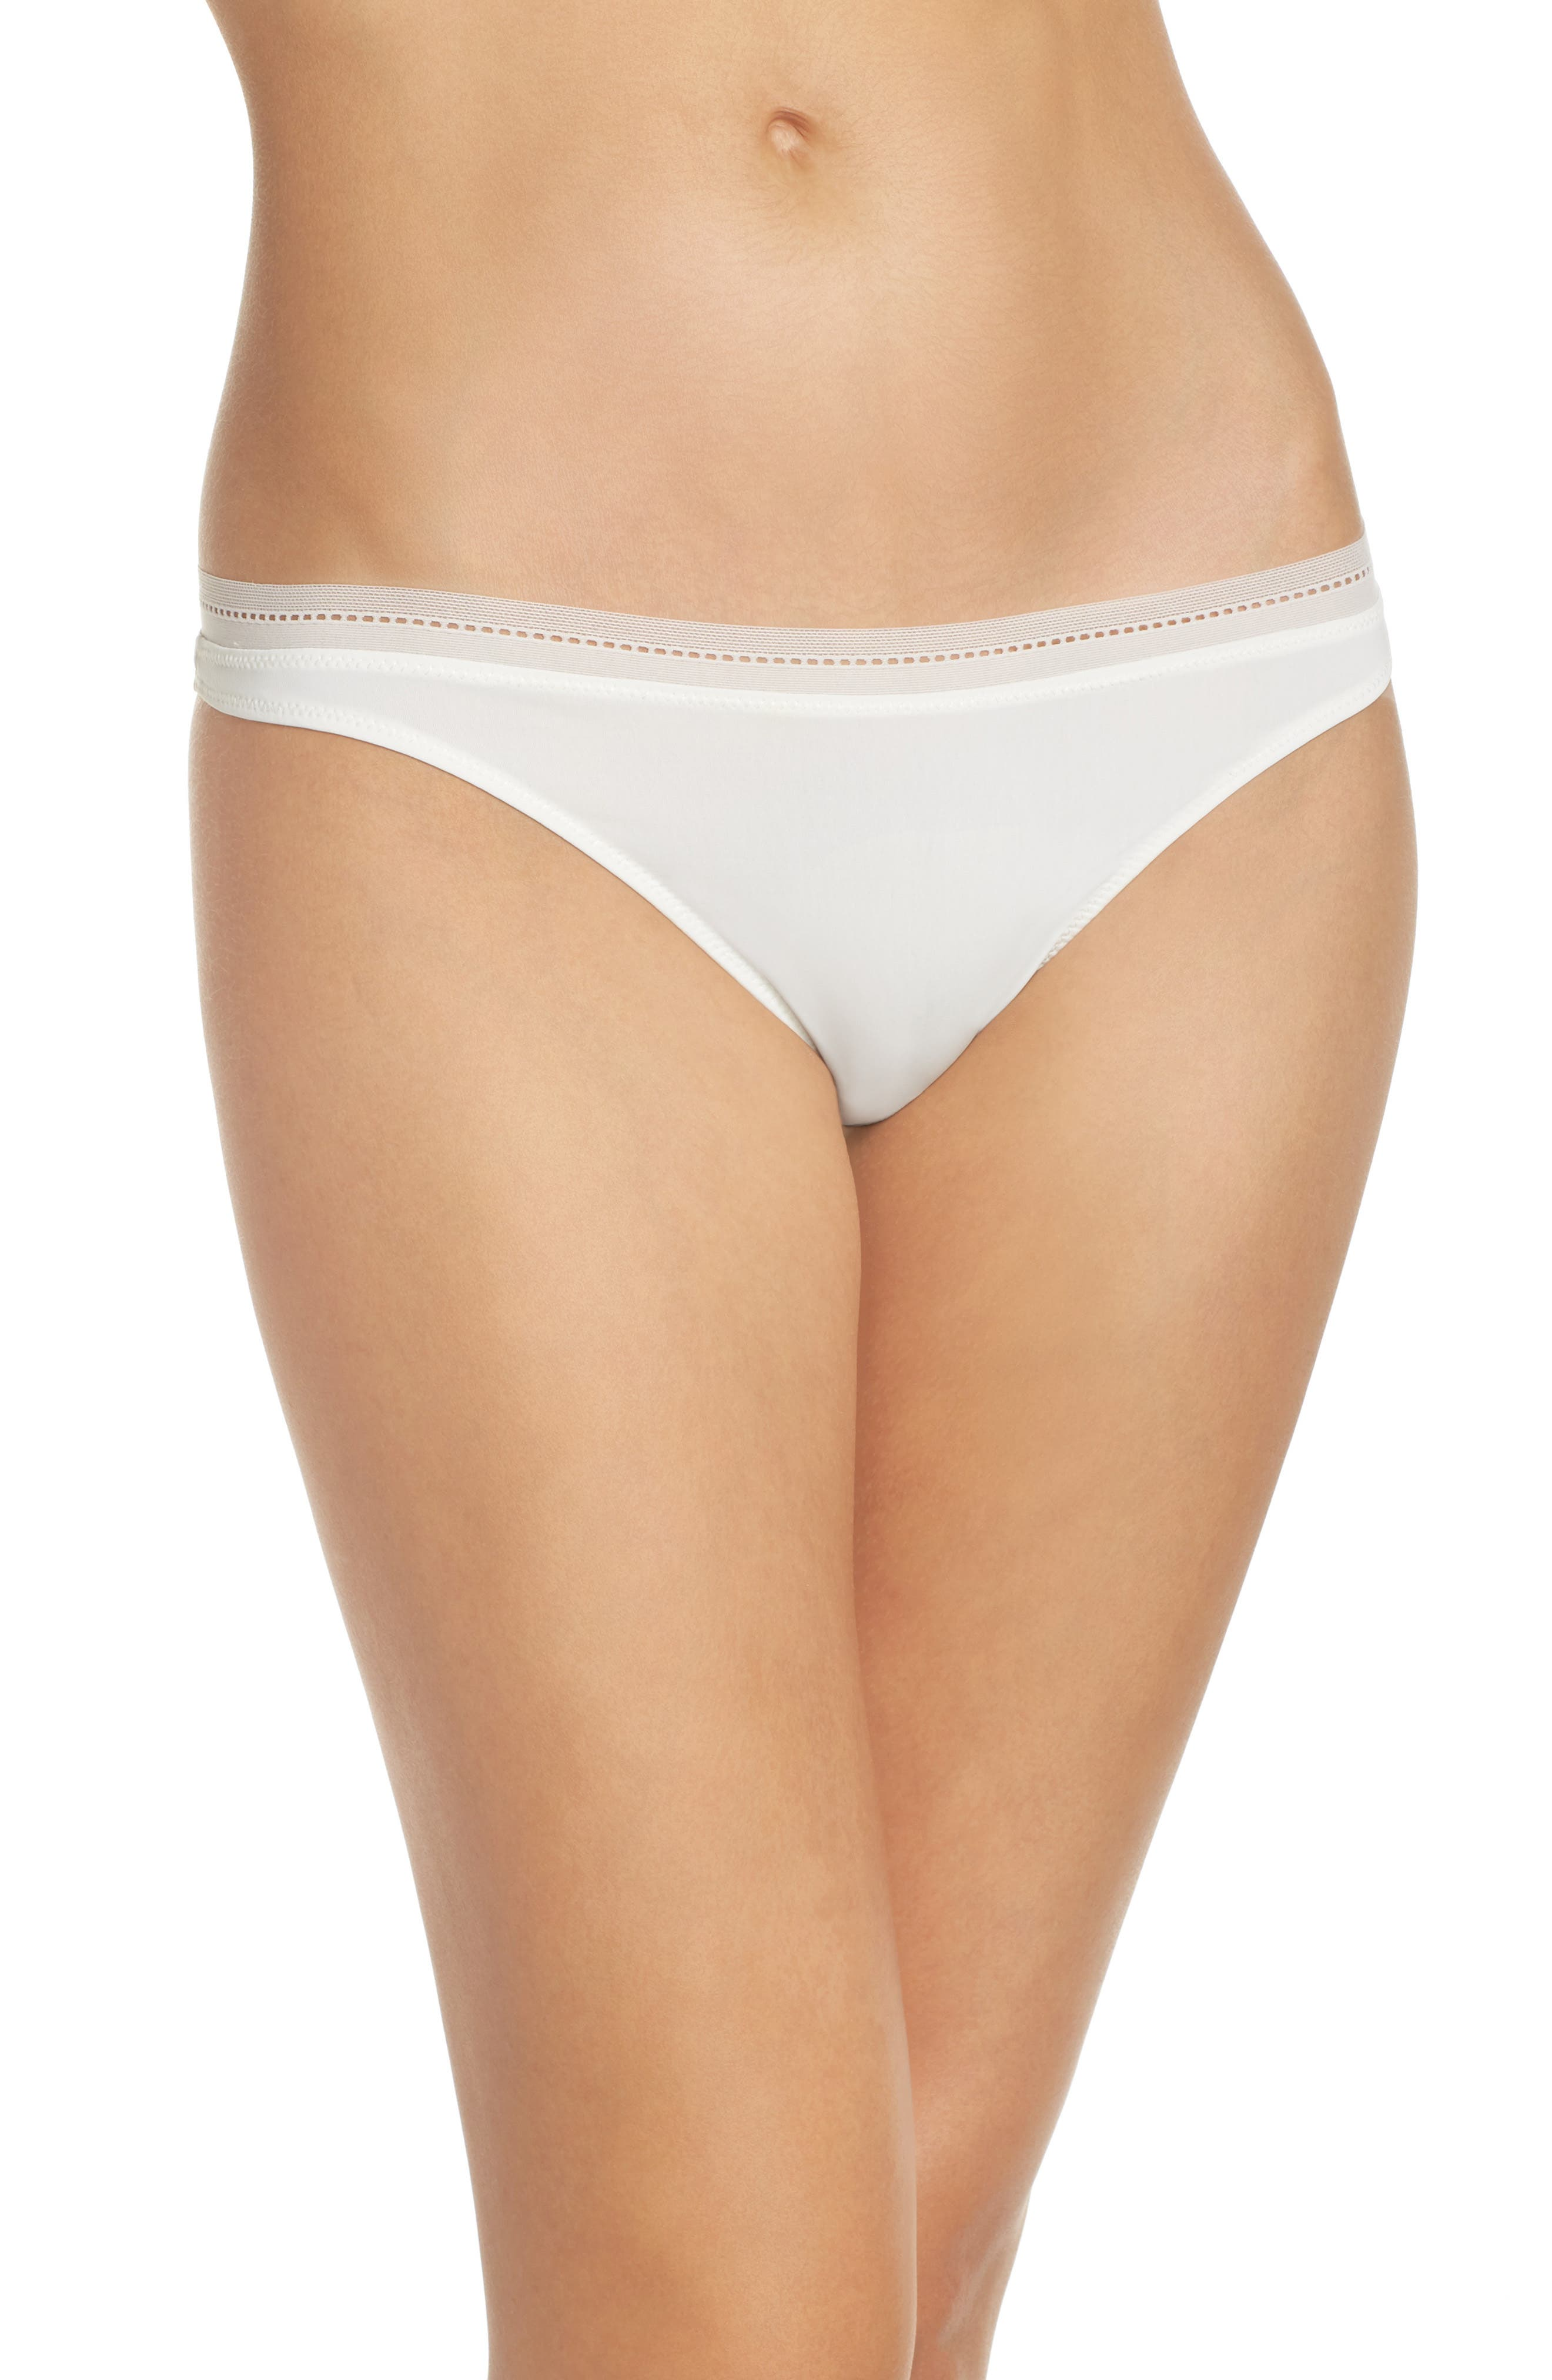 Intimately FP Truth or Dare Thong,                         Main,                         color, Ivory